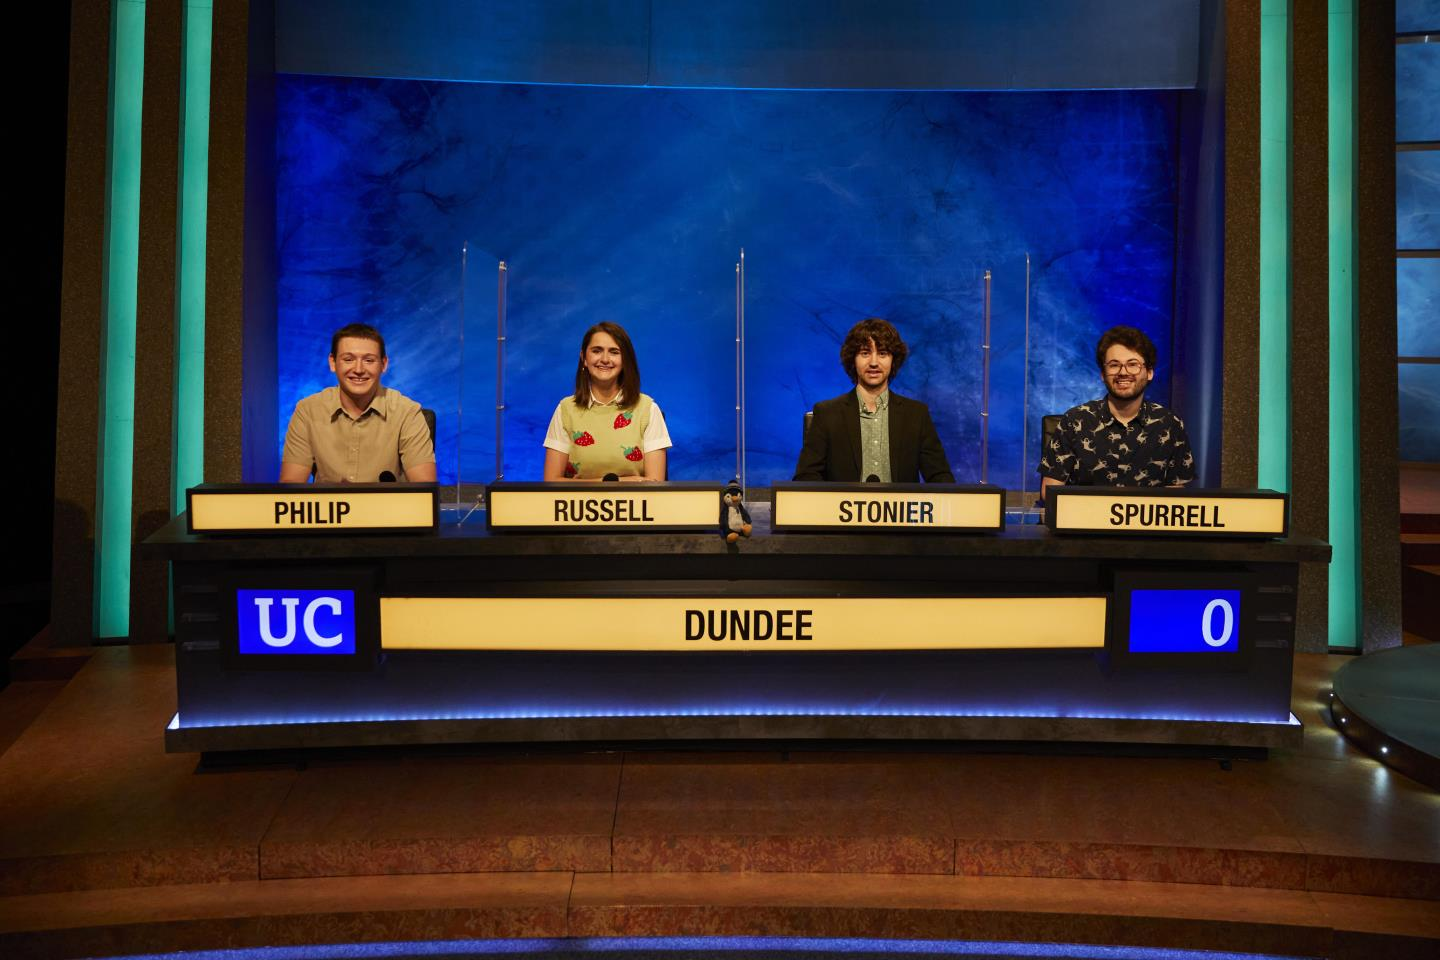 The University of Dundee team hope to claim victory for the first time since 1983.